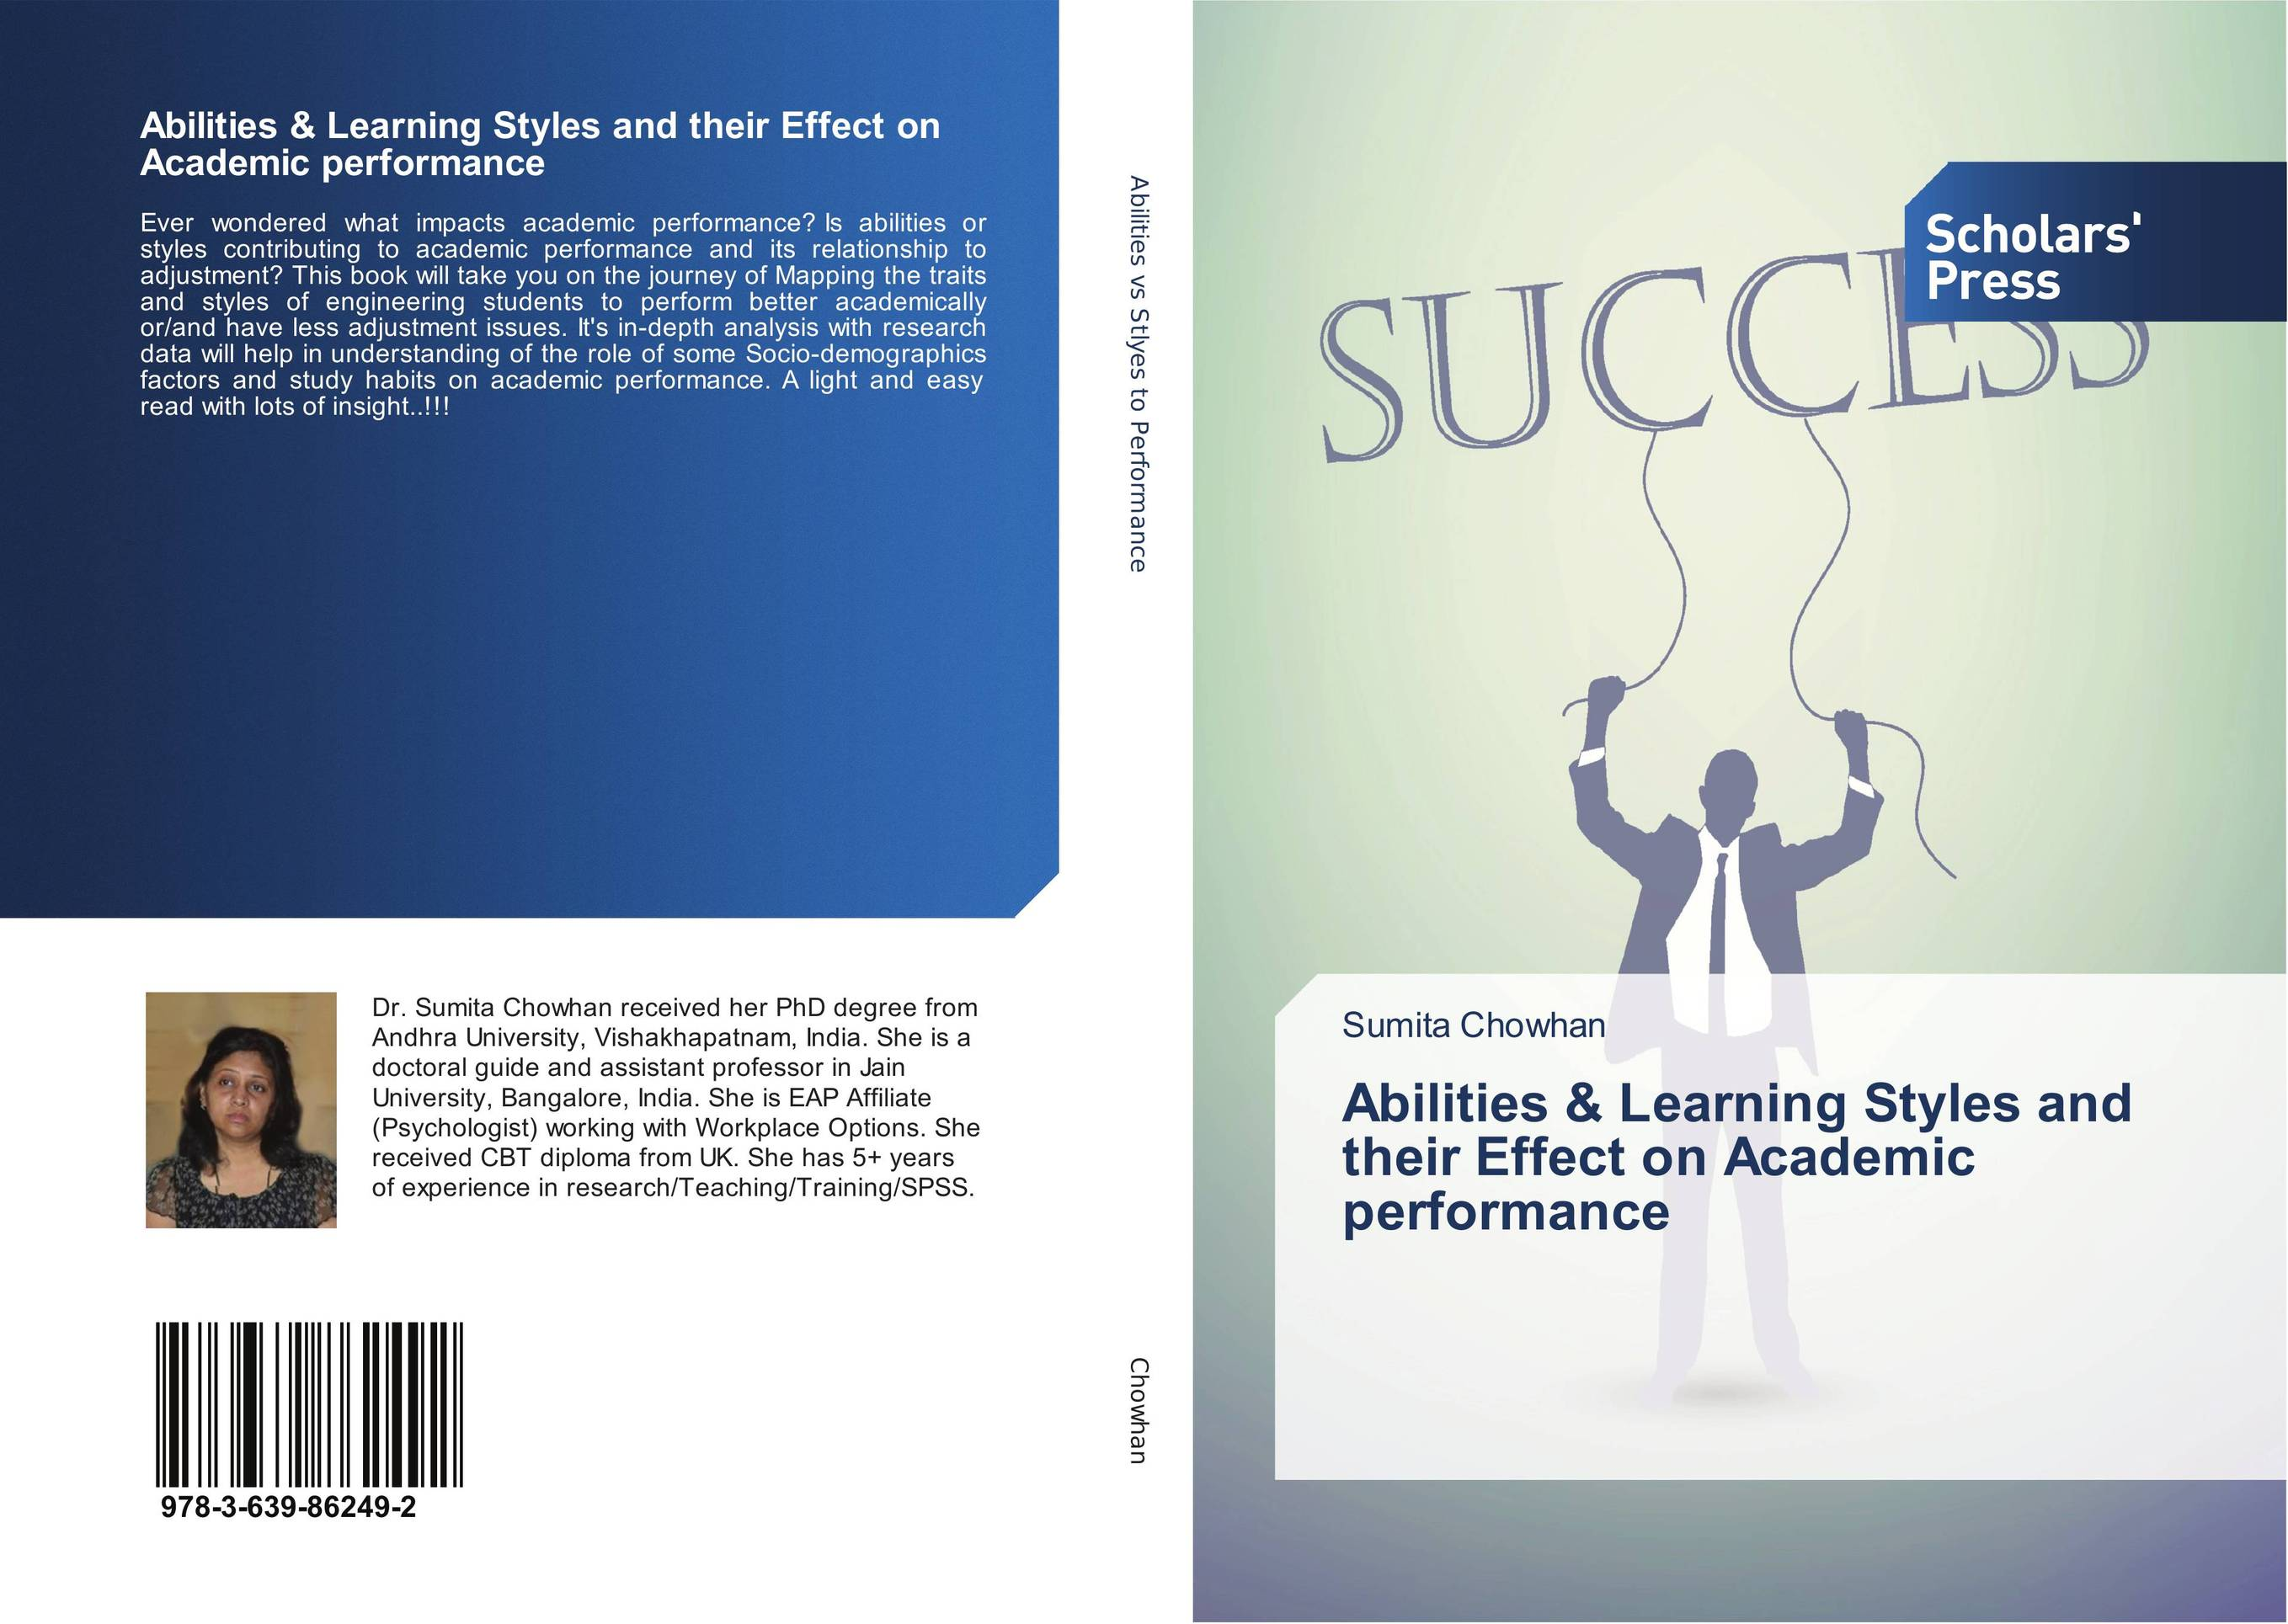 thesis learning styles and academic performance Theories of academic performance essays and research papers effects of learning styles to the academic performance learning styles to academic performance.